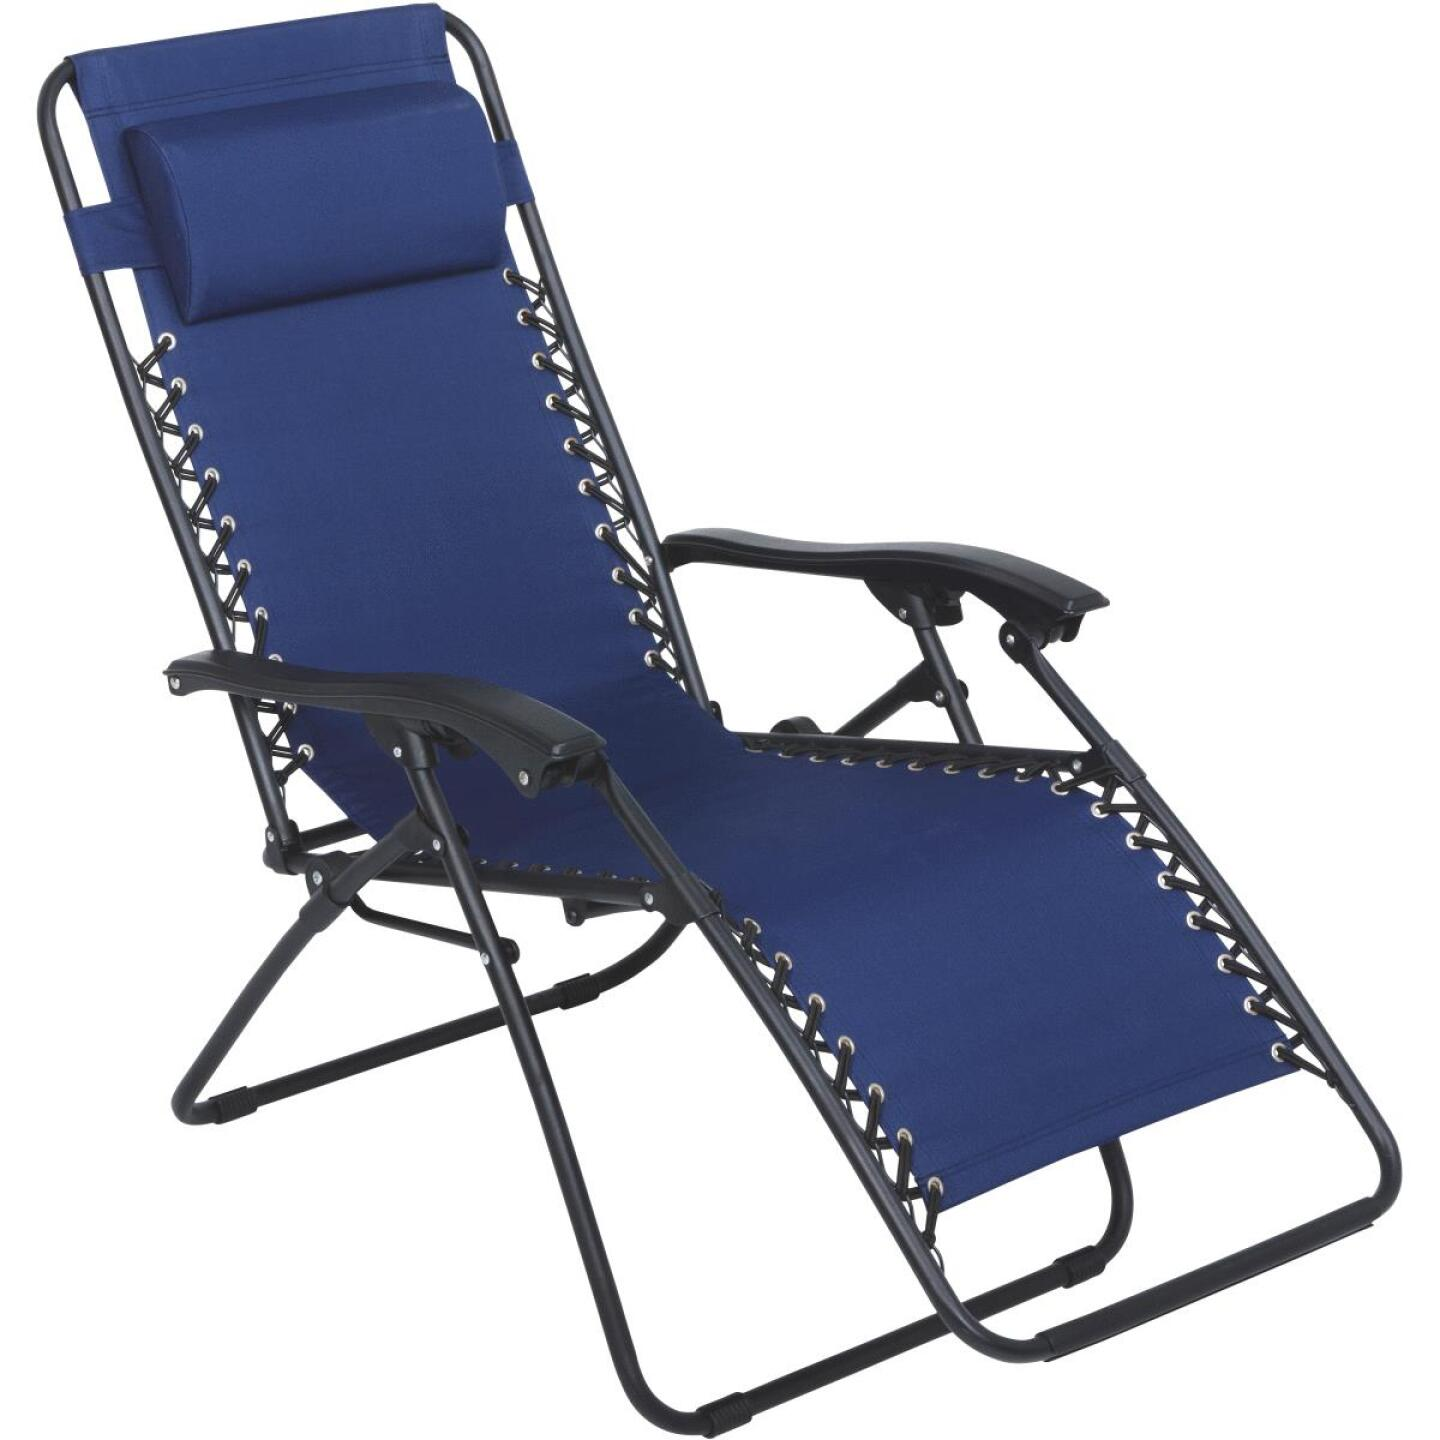 Outdoor Expressions Zero Gravity Relaxer Blue Convertible Lounge Chair Image 1